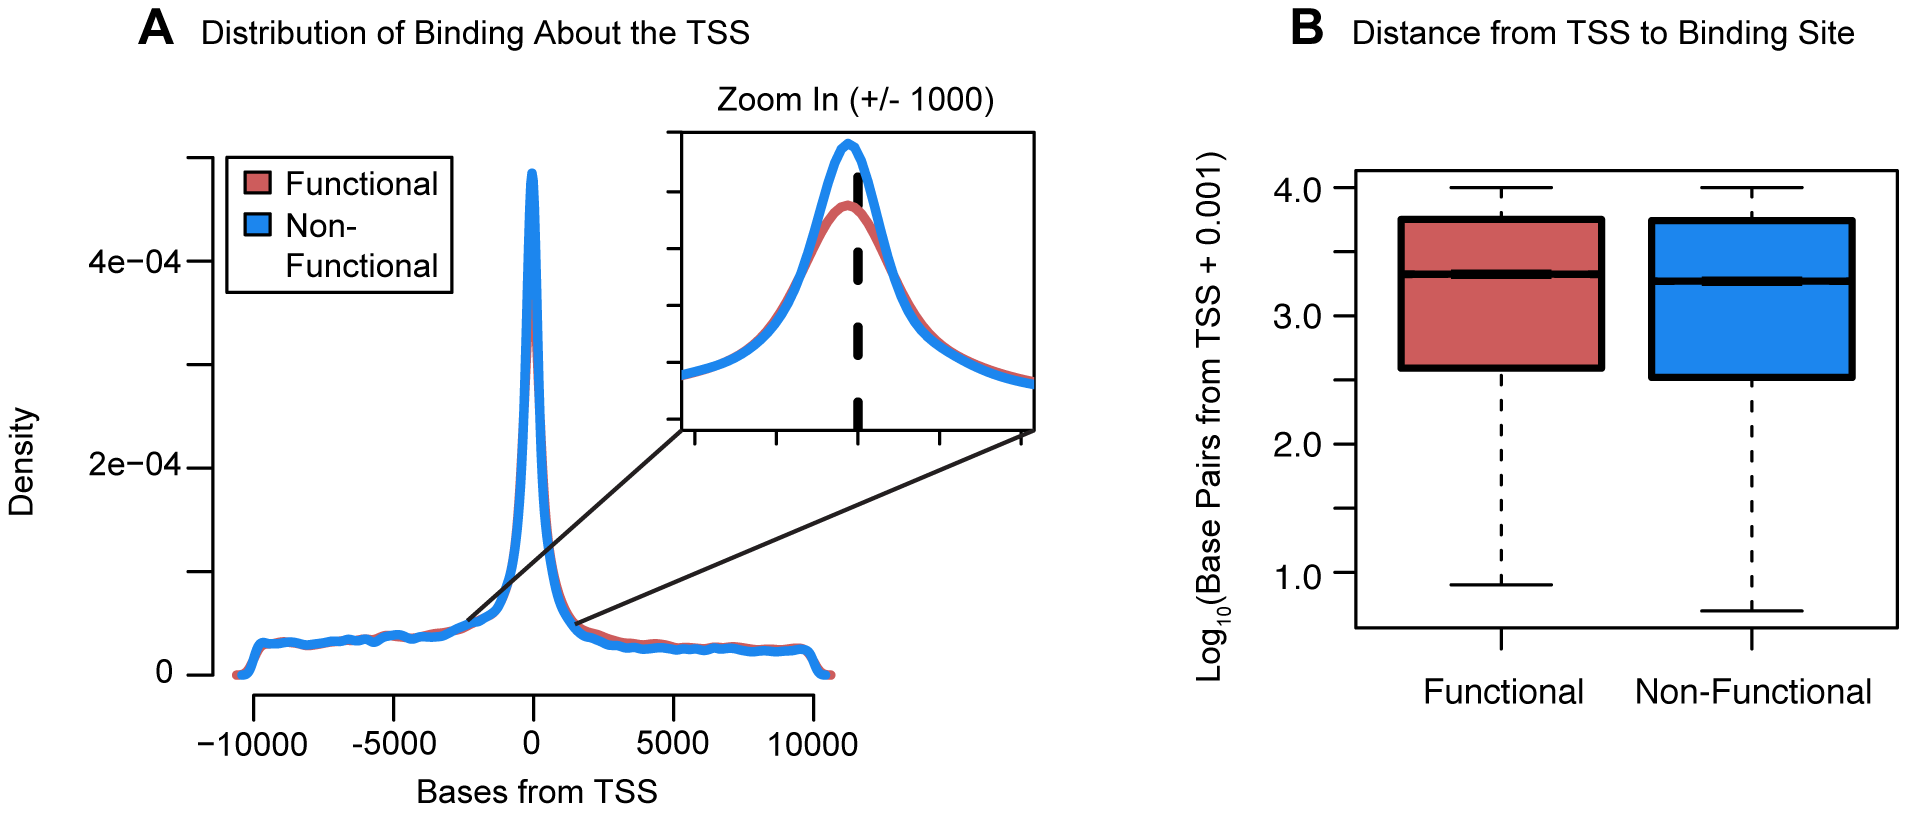 Distribution of functional binding about the TSS.